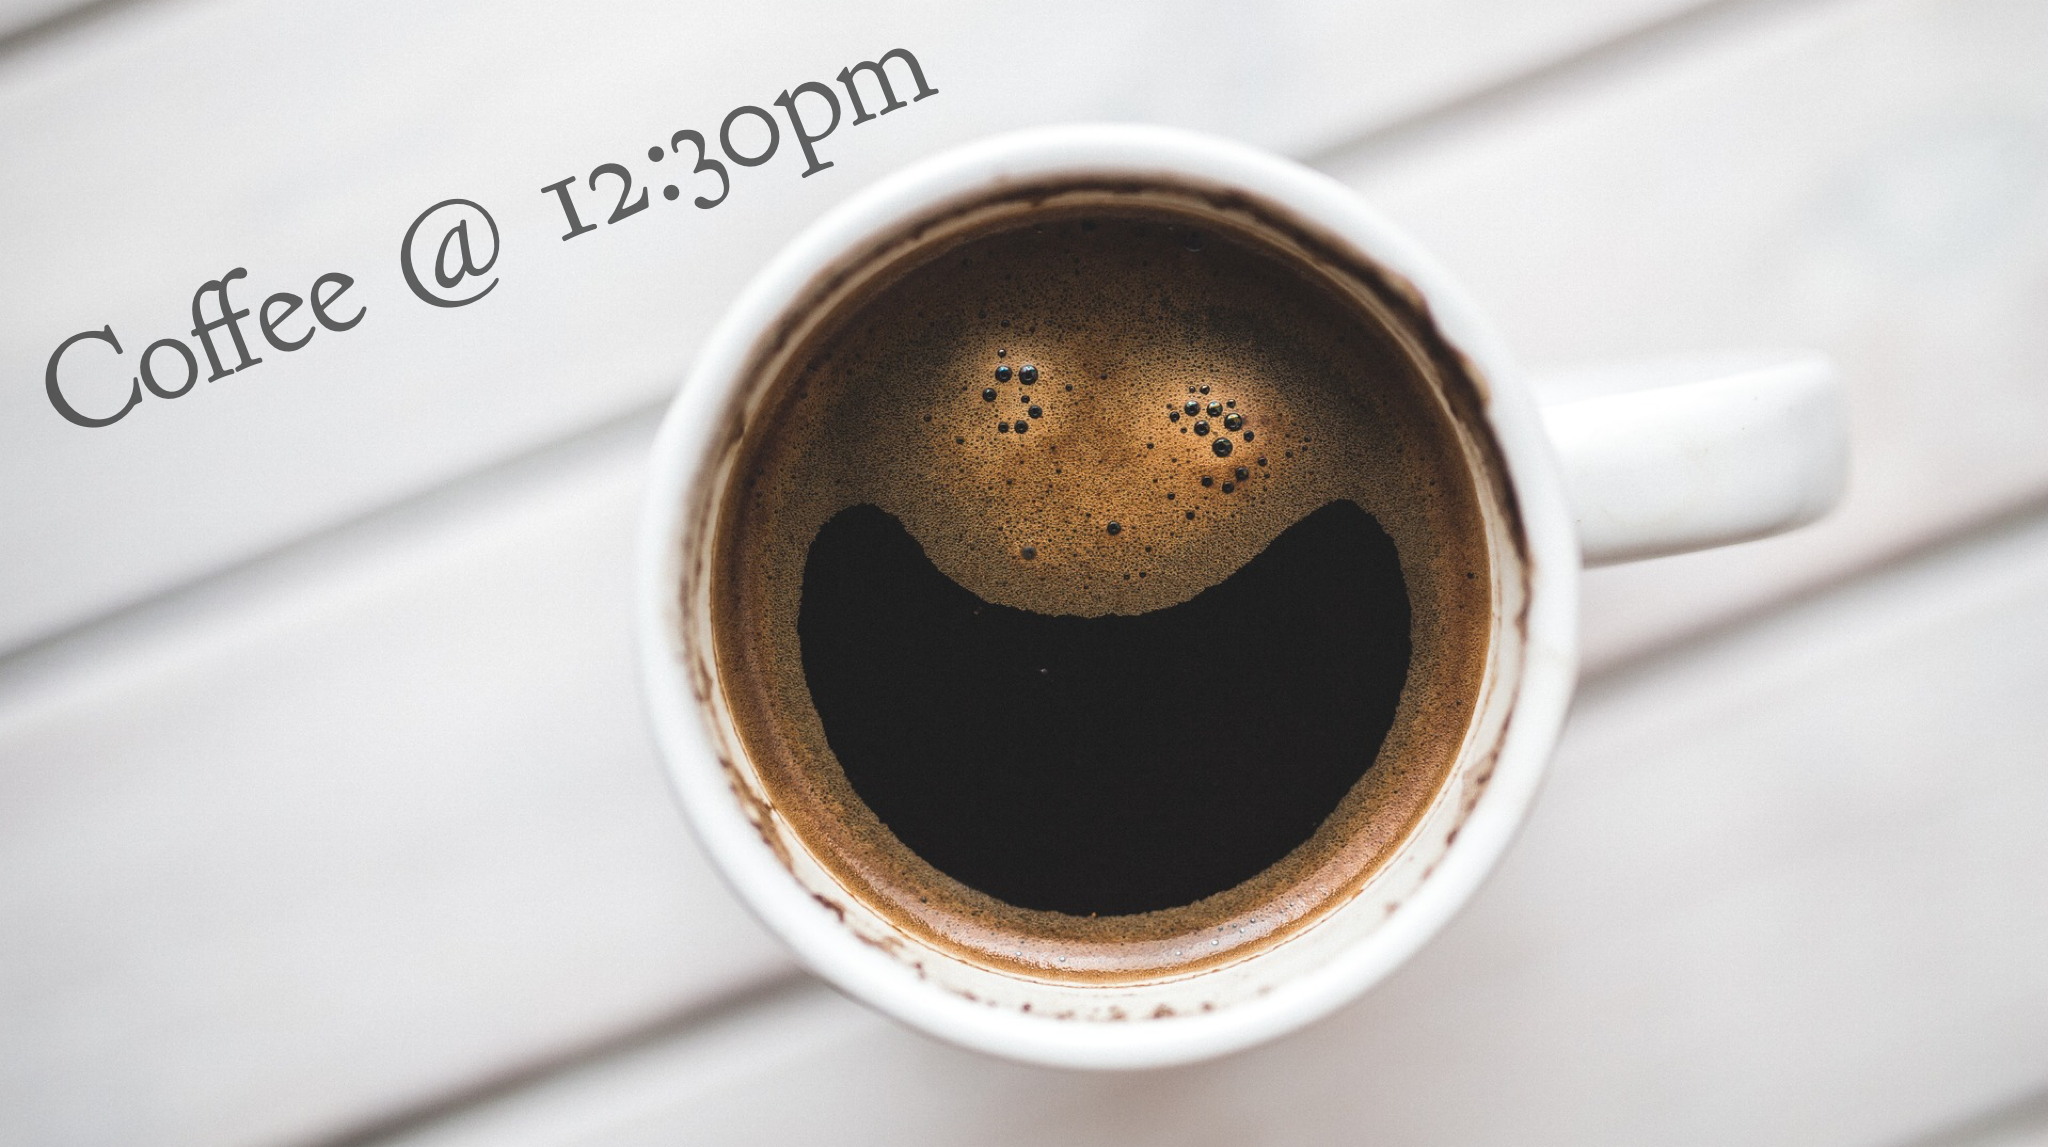 - coffee refreshments will begin at 12:30pm! Come early for a great time of fellowship and refreshments!